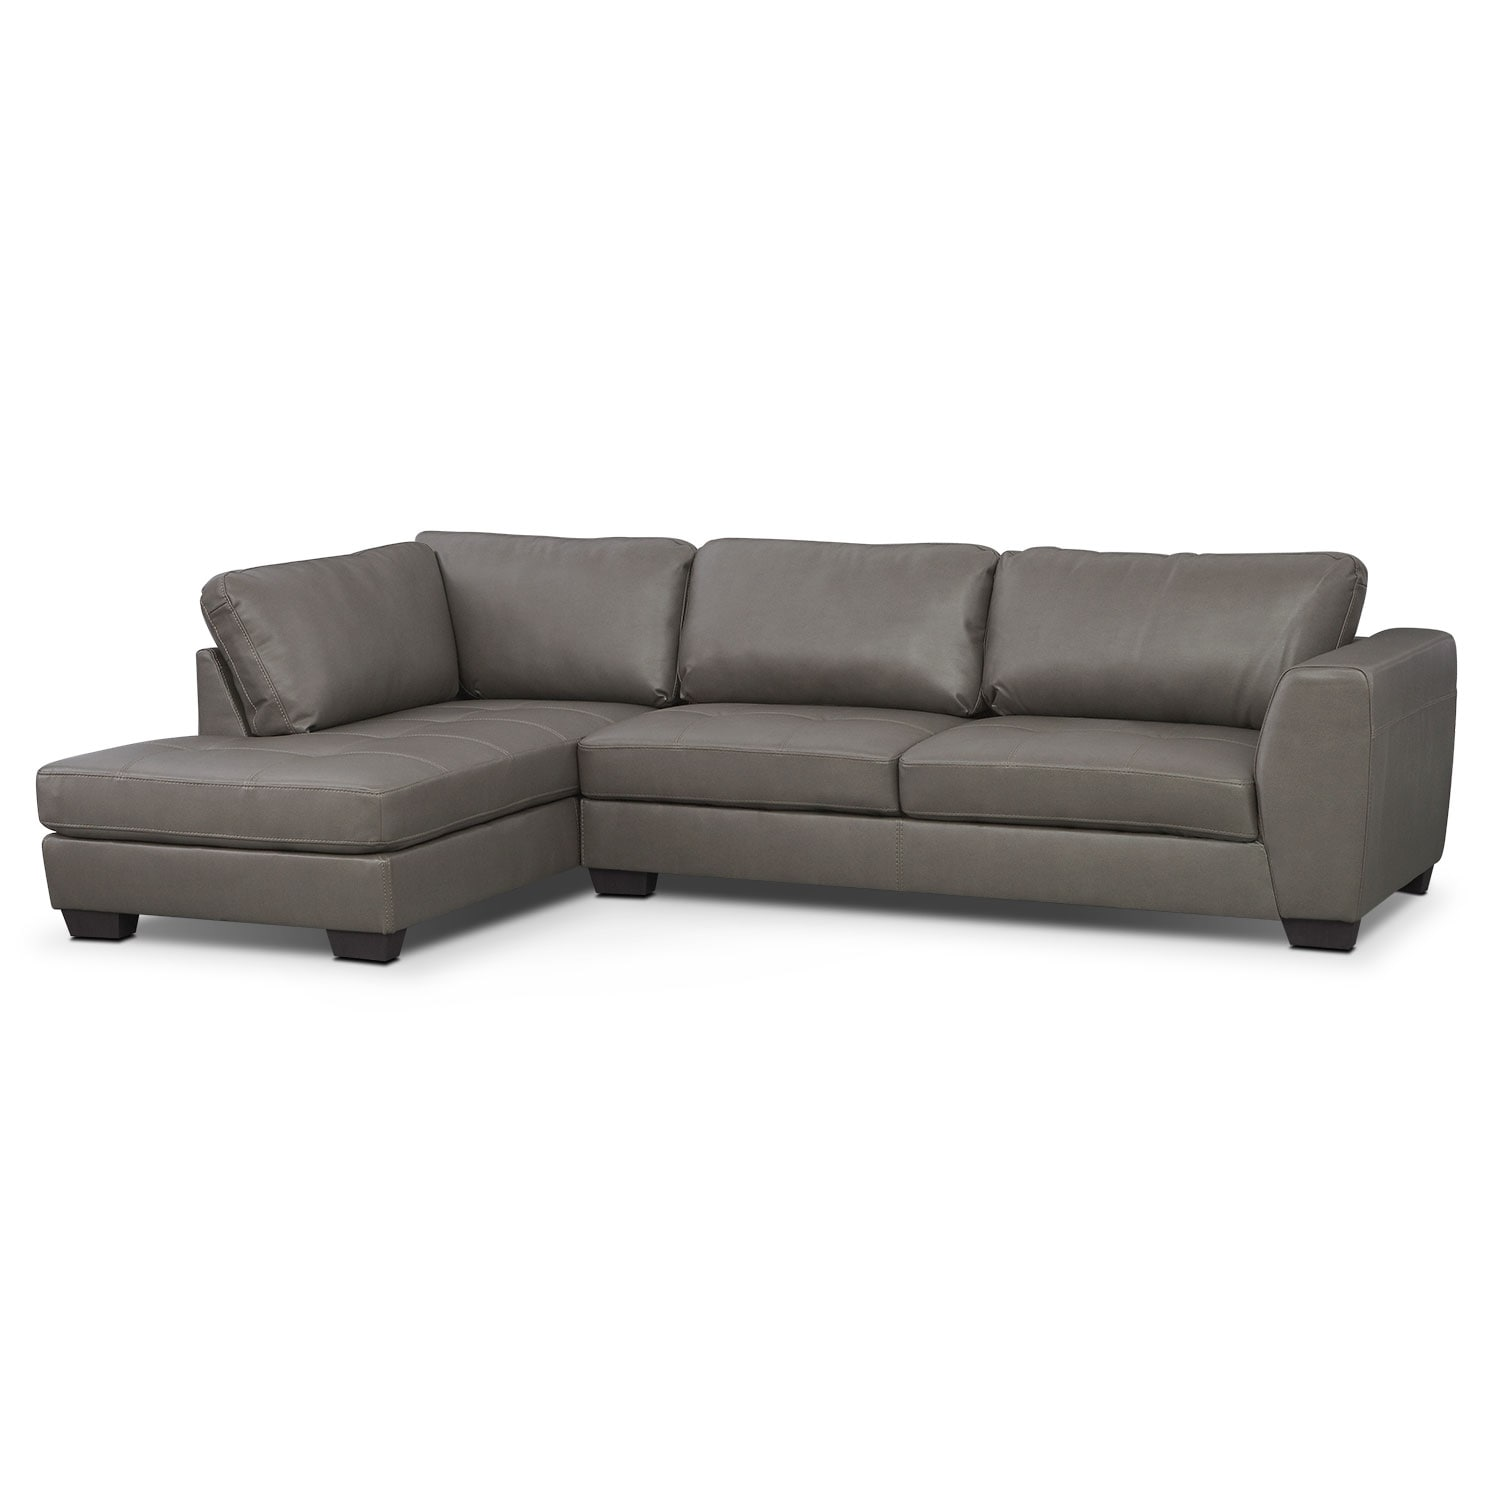 Ciera IV 2 Pc. Sectional